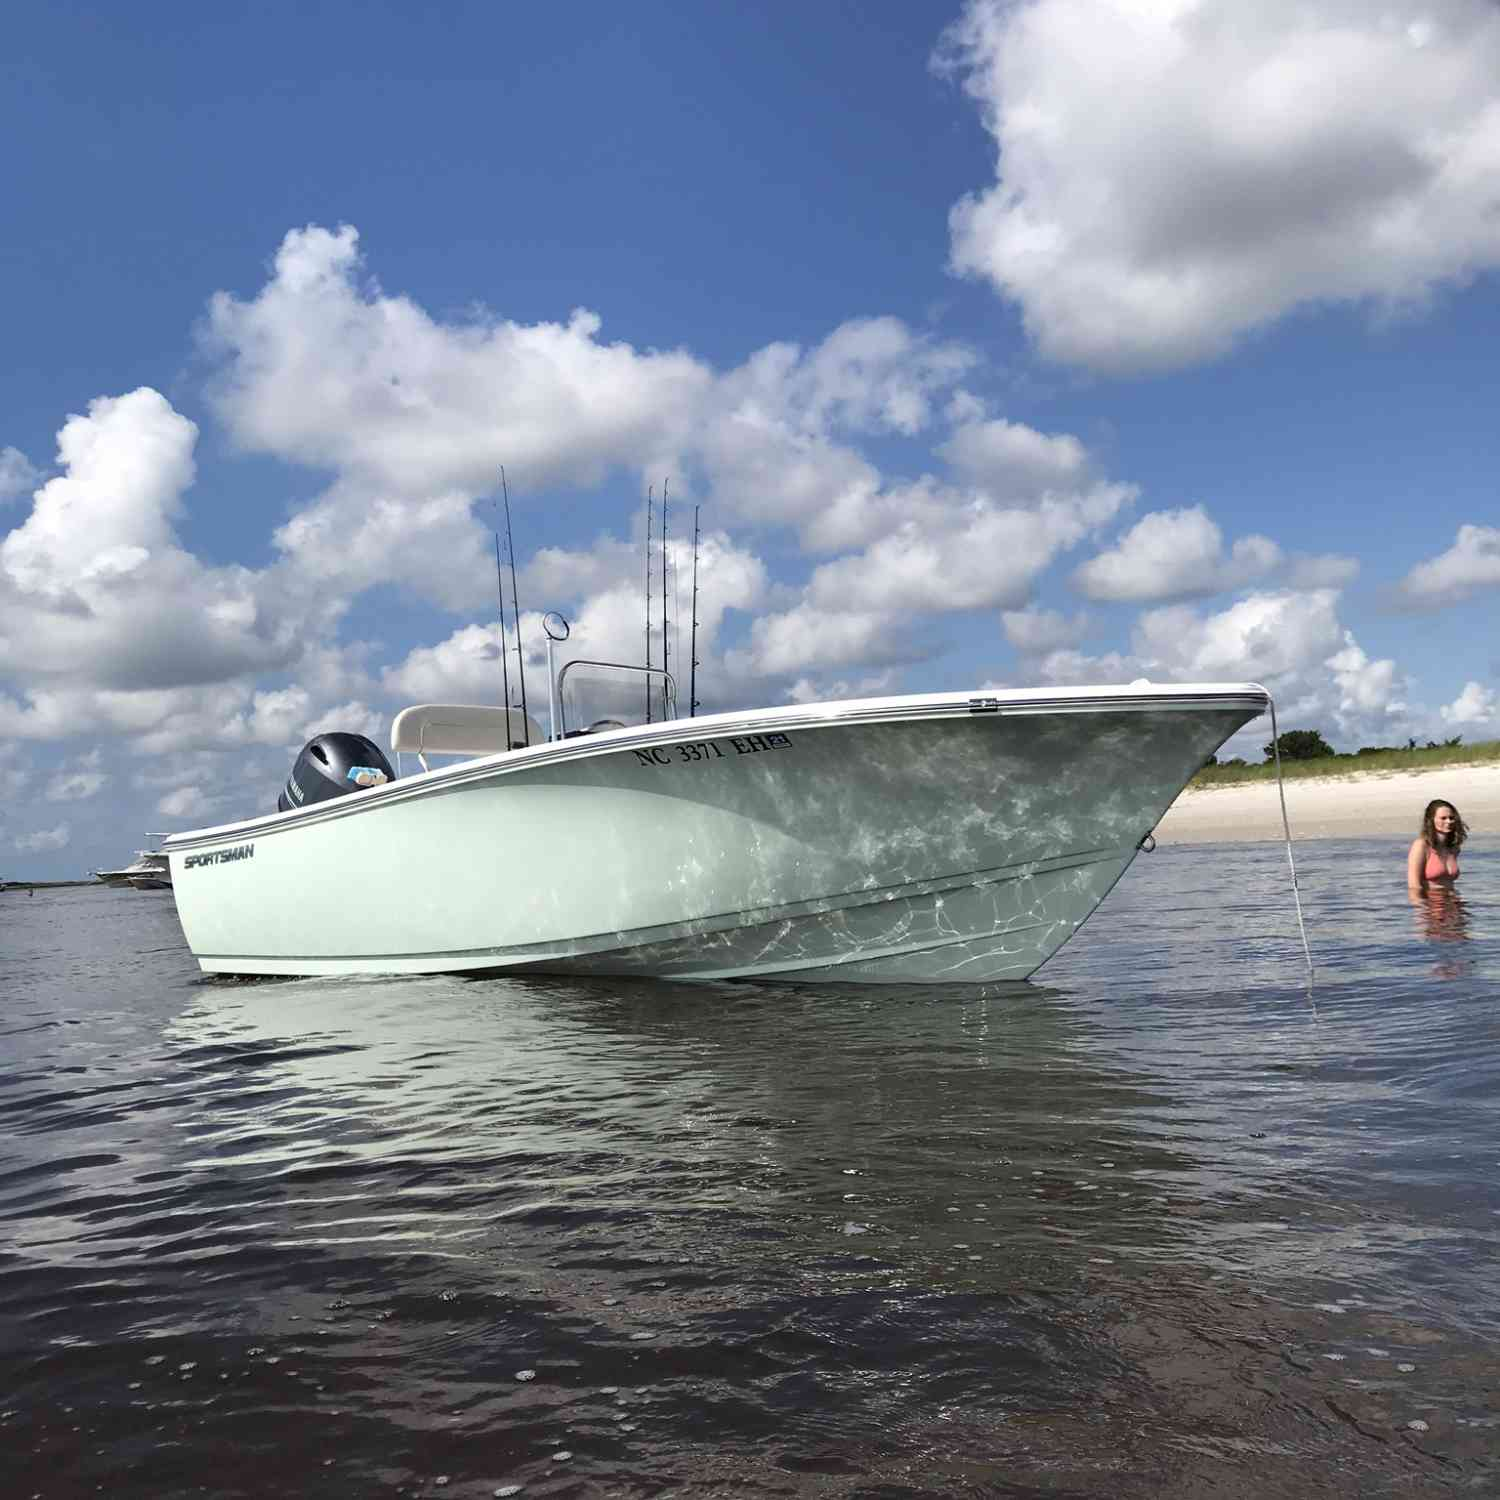 Title: Beach day - On board their Sportsman Island Reef 19 Center Console - Location: Wrightsville Beach, NC. Participating in the Photo Contest #SportsmanSeptember2018